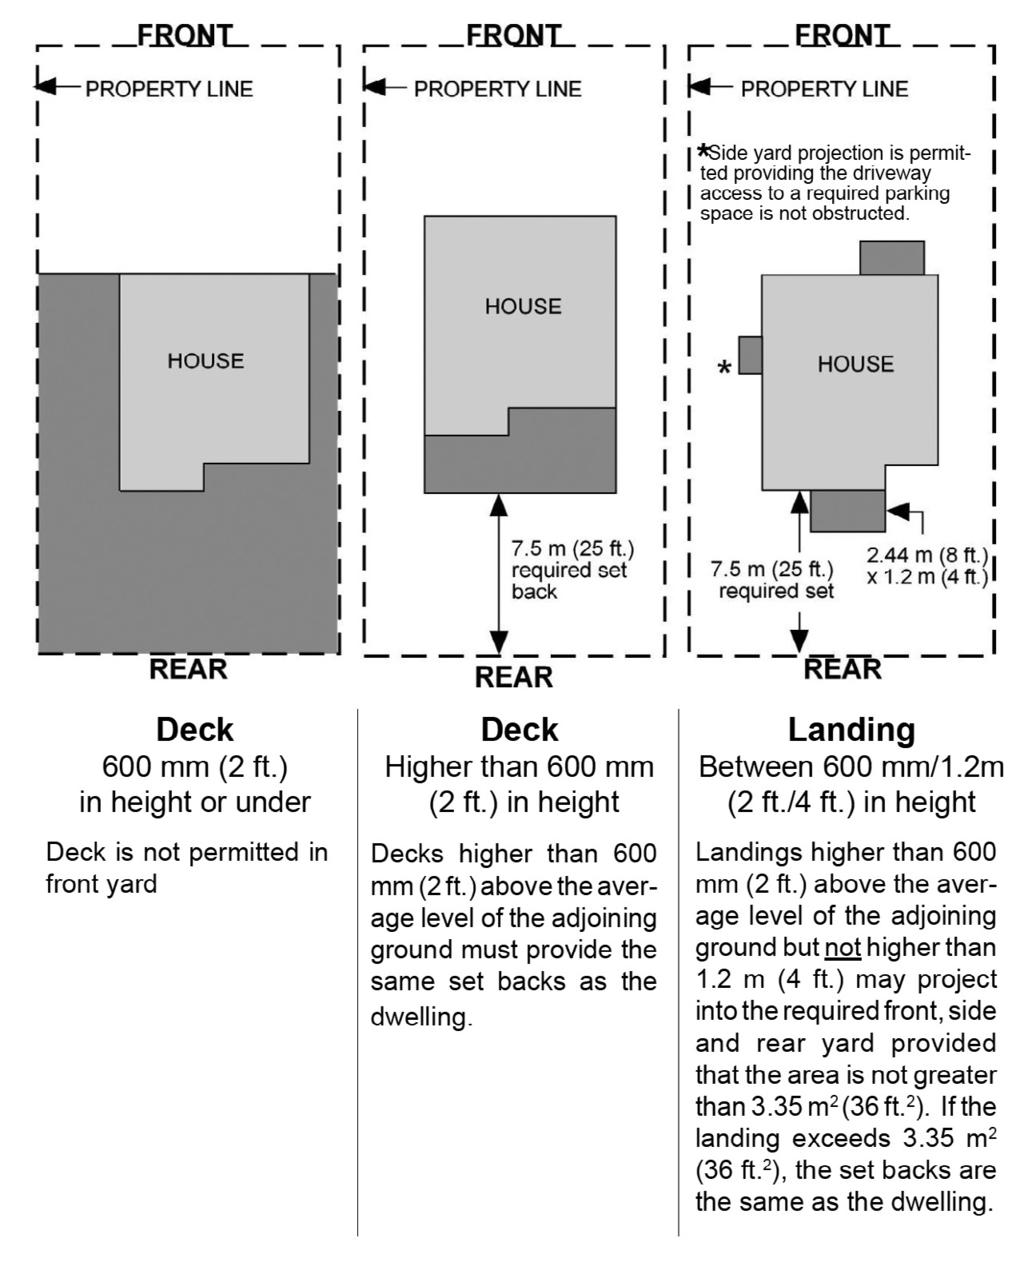 Where and how high can I build my deck? As indicated in FIGURE 4, zoning requirements on the height of the deck will determine its location.